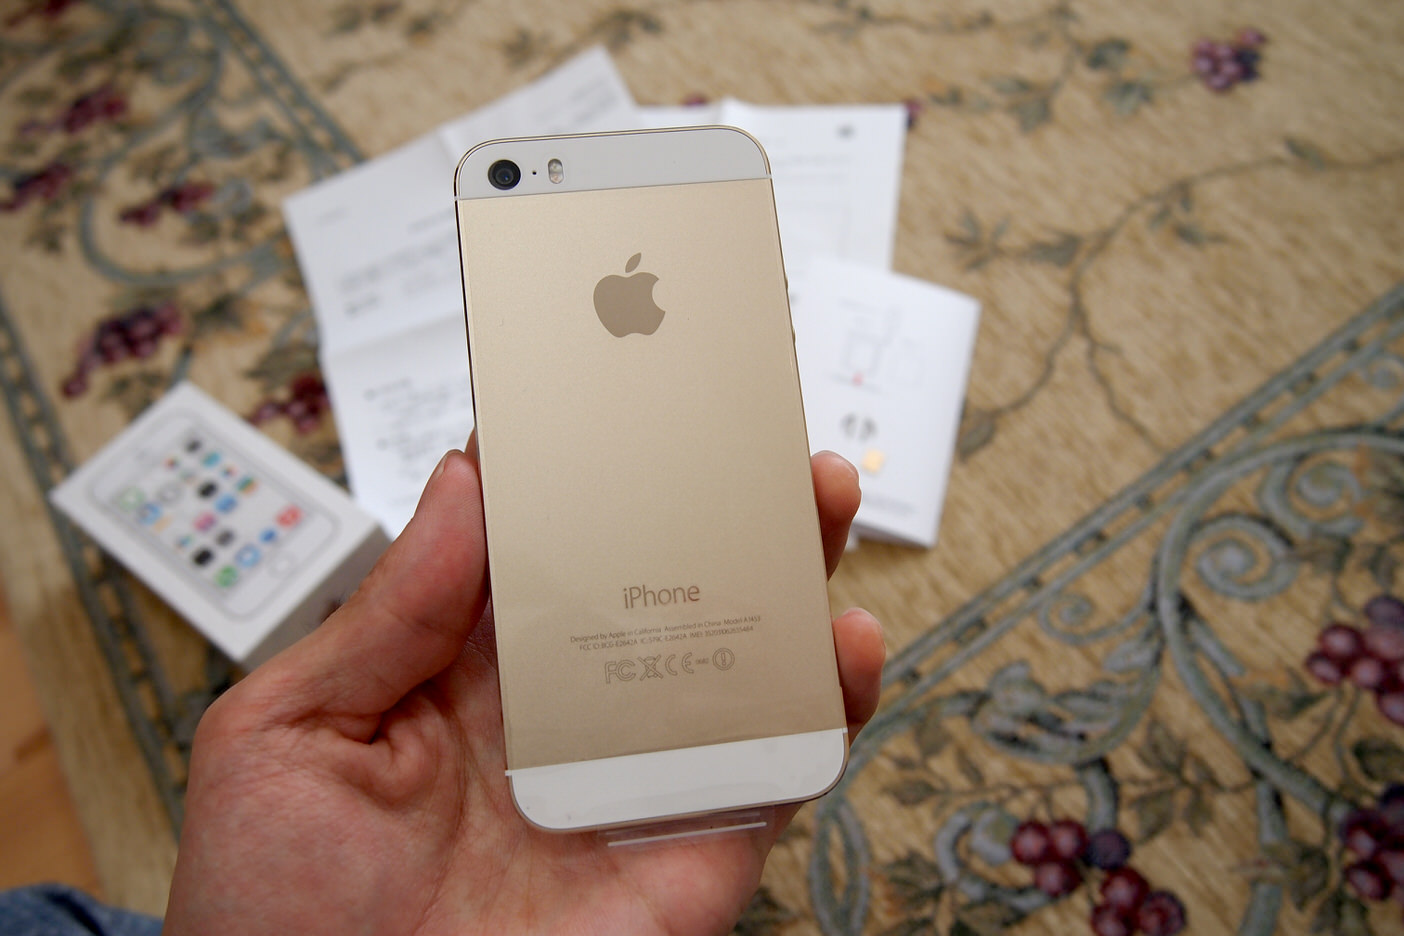 Iphone5sが新品に。